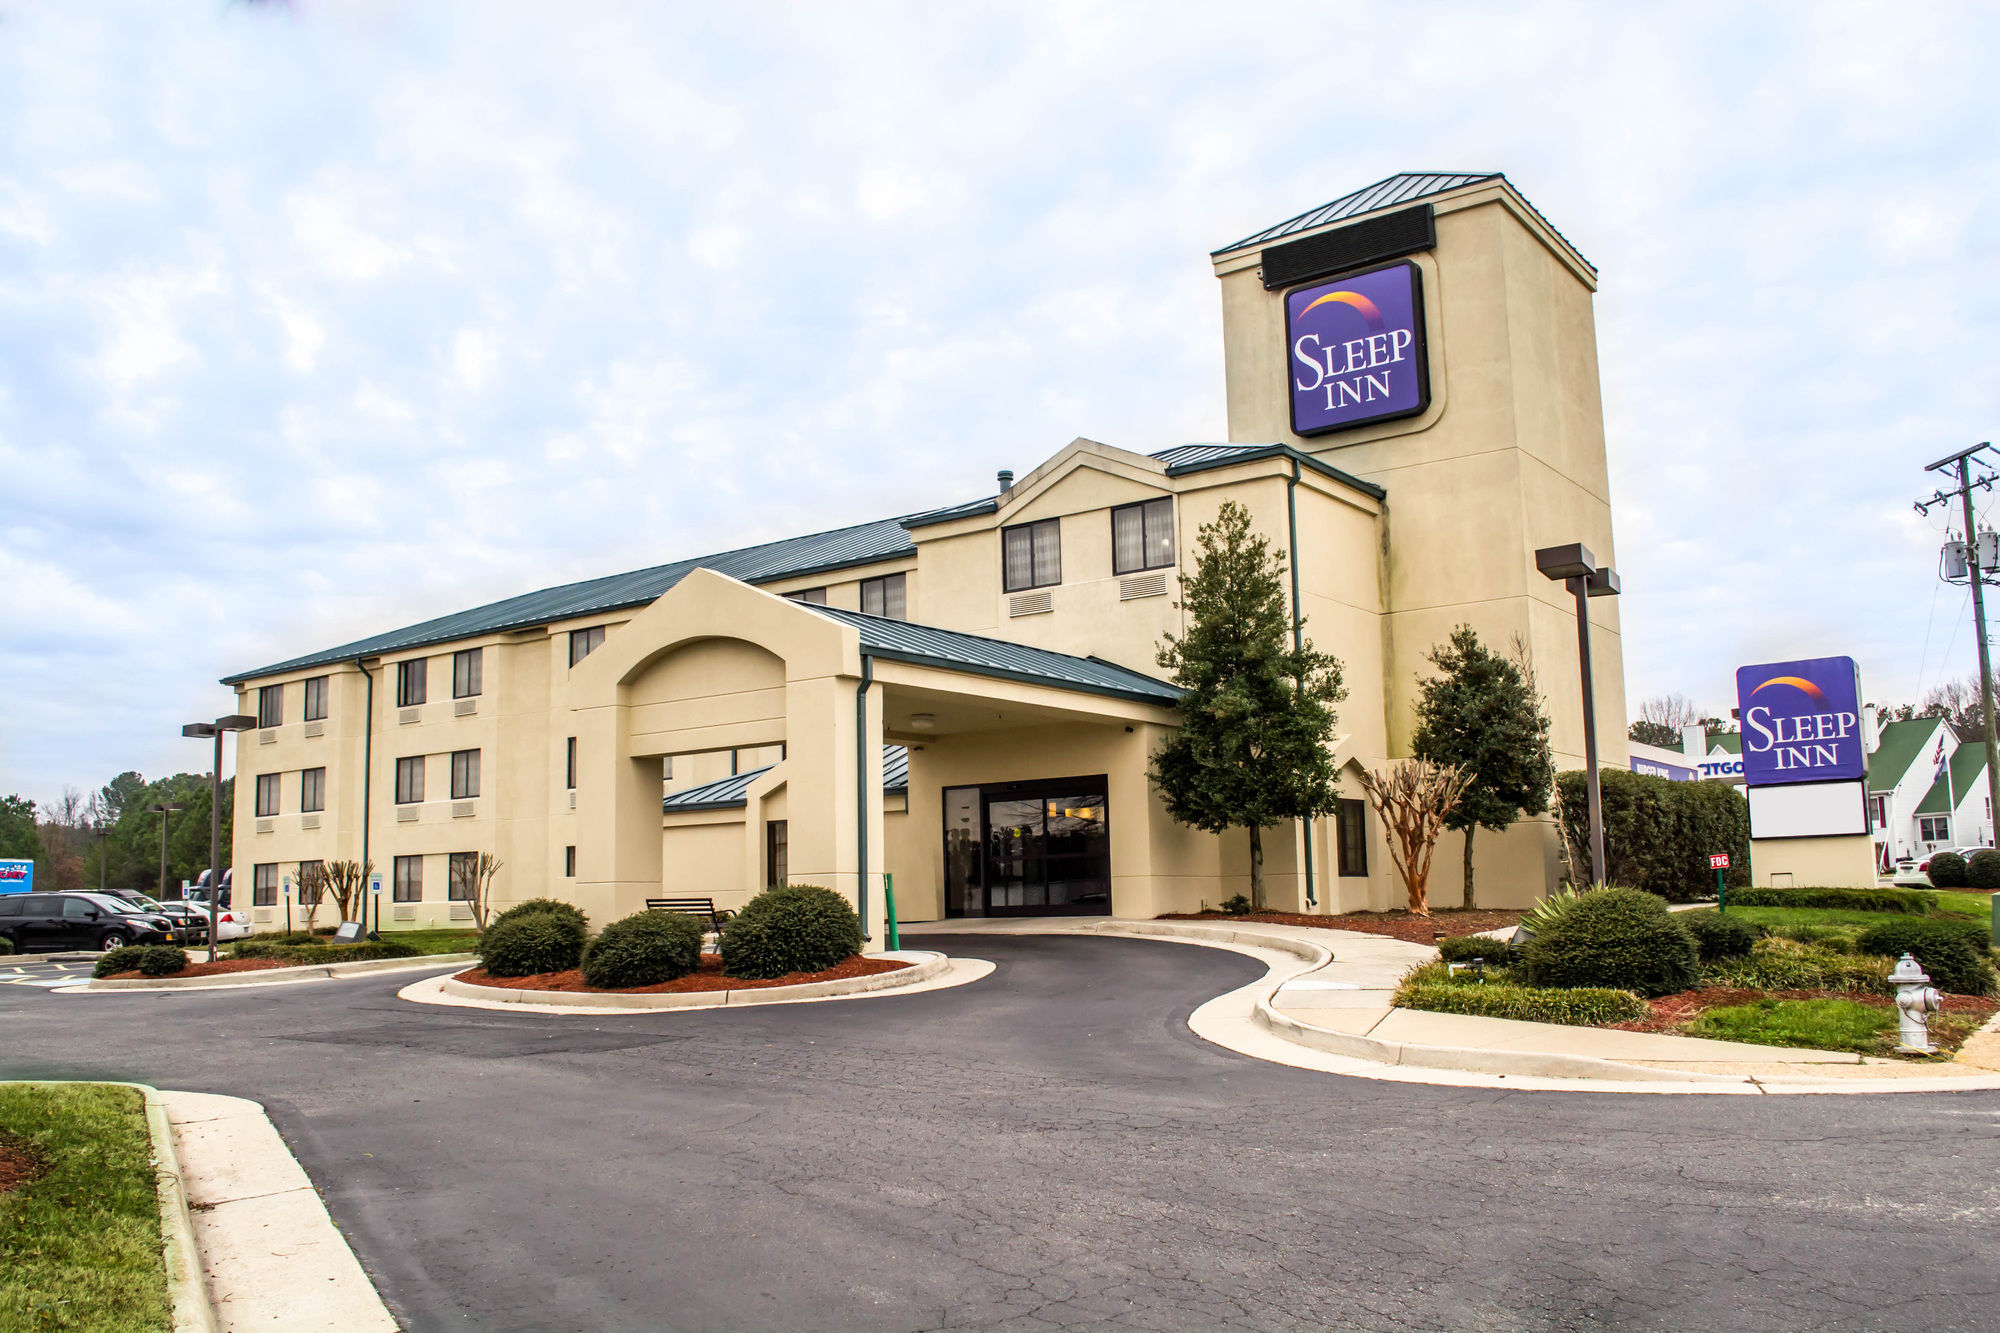 Sleep Inn in Richmond, VA